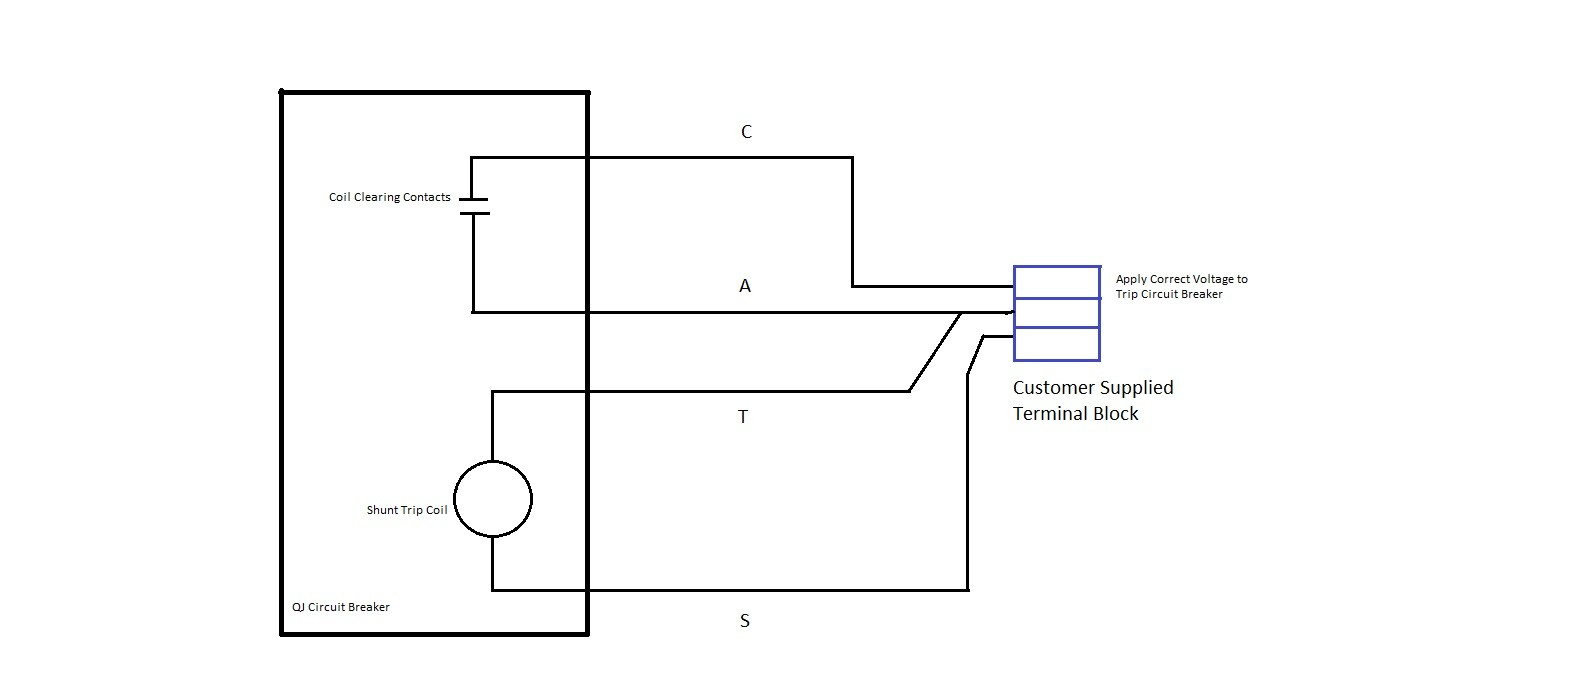 square d shunt trip breaker wiring diagram elegant wiring diagram shunt trip ansul system wiring schematic fancy siemens shunt trip breaker wiring diagram 54 with additional 2001 jeep grand cherokee radio wiring